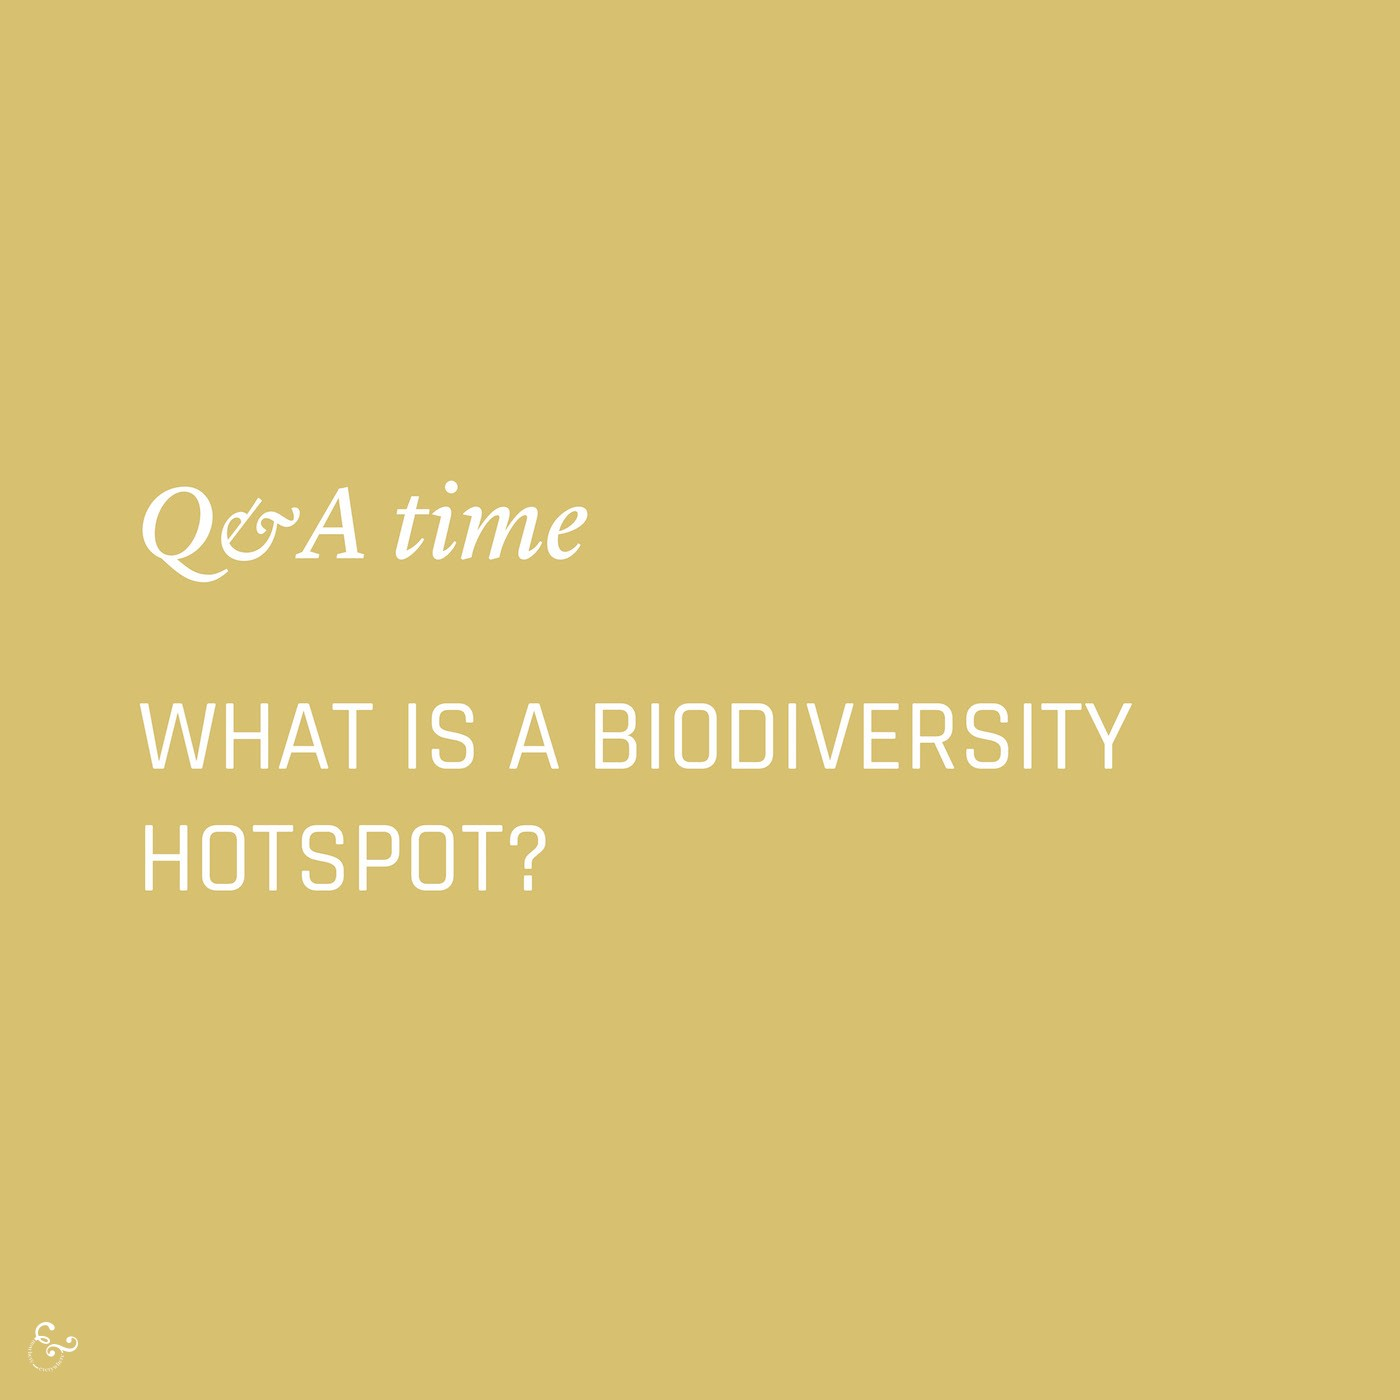 What is a biodiversity hotspot? Environment Environmental Questions FAQs Frequently Asked Questions Climate Change Plastics Oceans Animals Nowhere & Everywhere